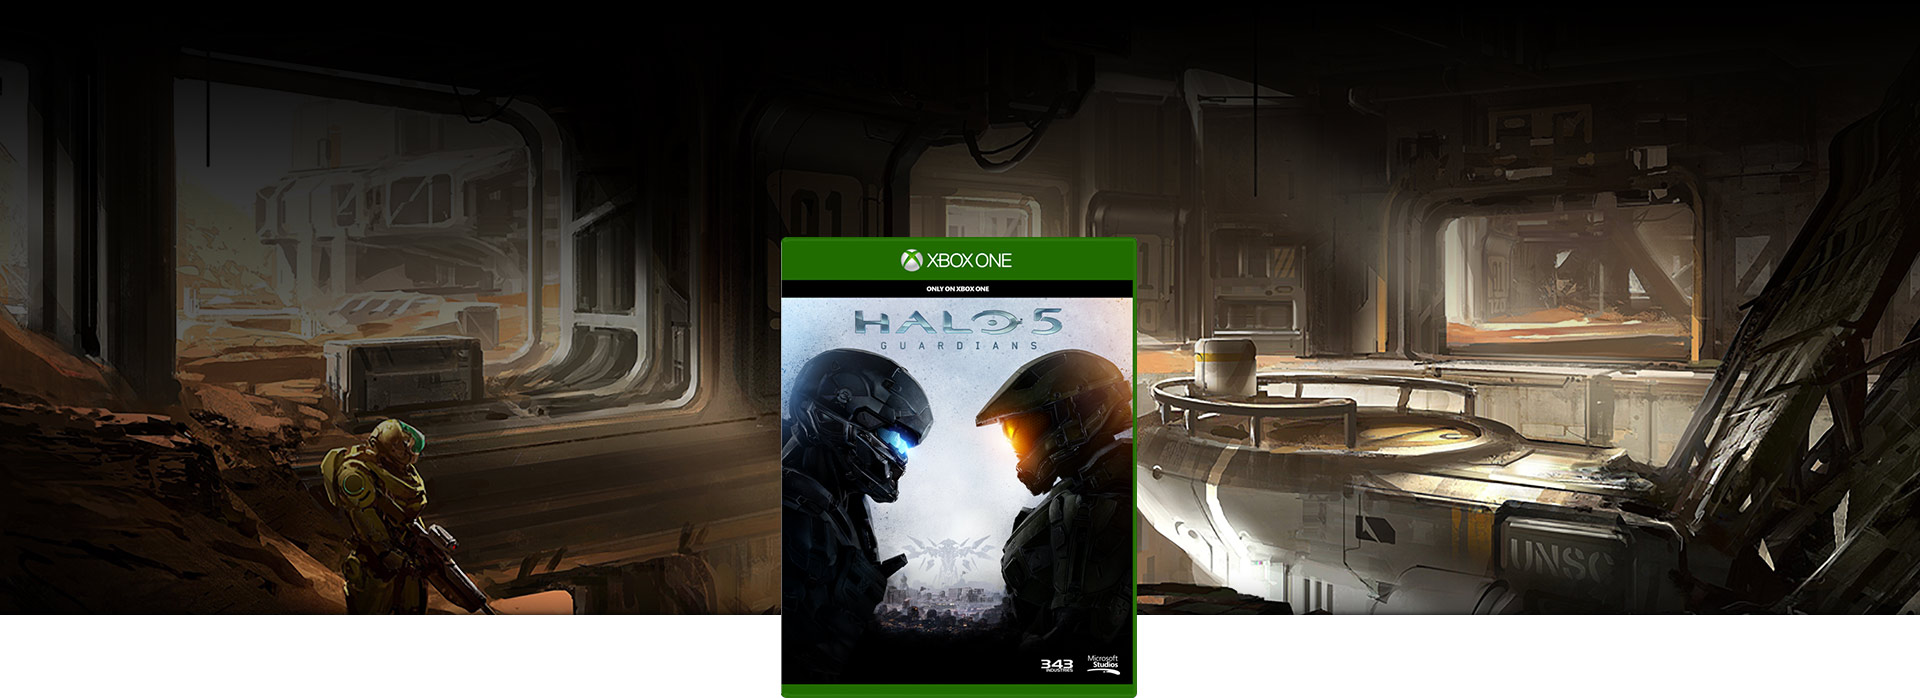 Halo 5 Guardians Box shot, over a background of concept art for riptide battlemap scene